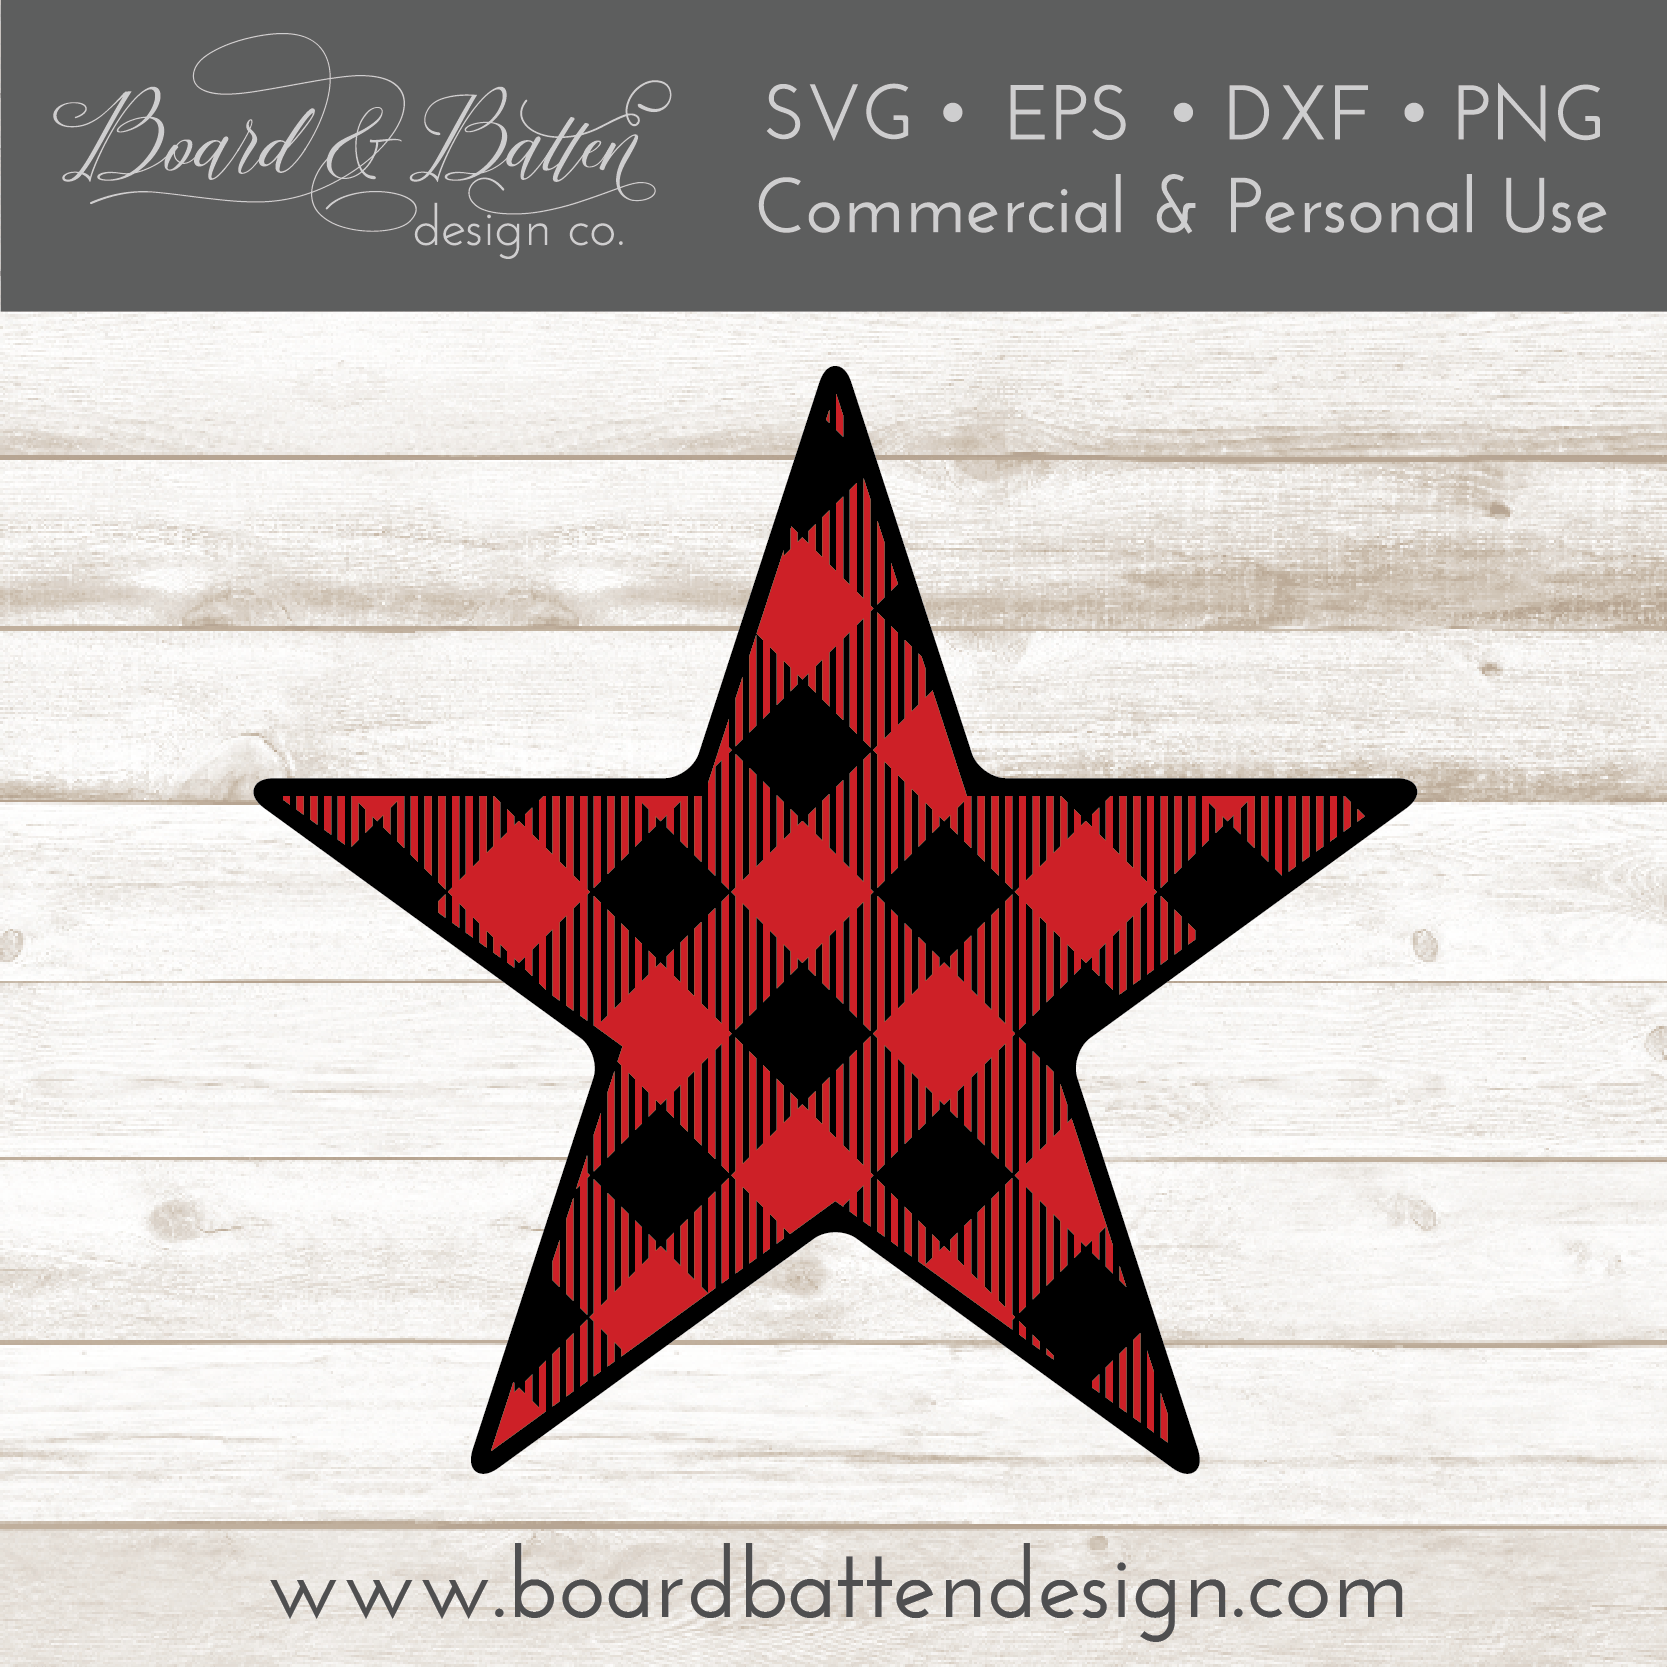 Buffalo Plaid Star Shape Layered SVG - Commercial Use SVG Files